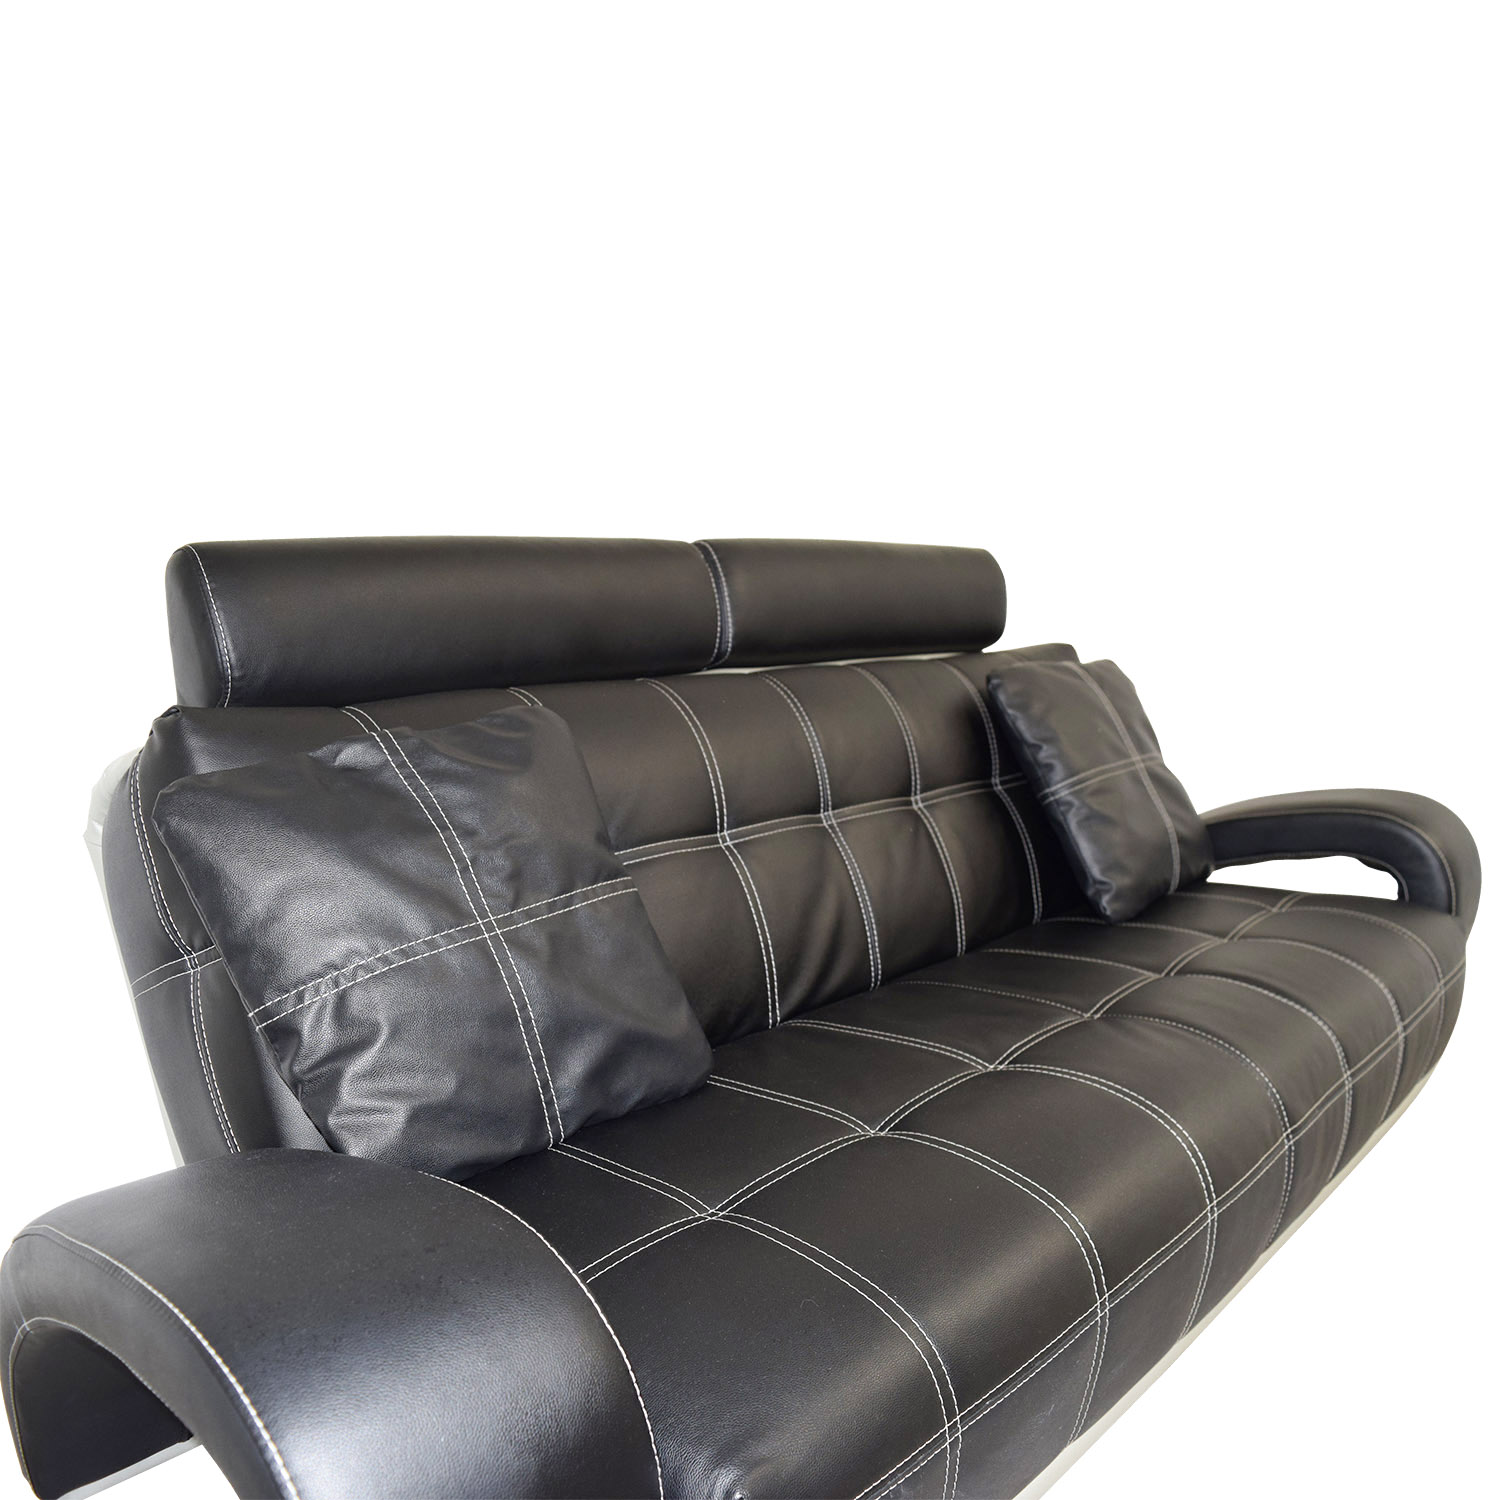 Second Hand Leather Sofas Gosport: Black Leather Sofa With Pillows / Sofas